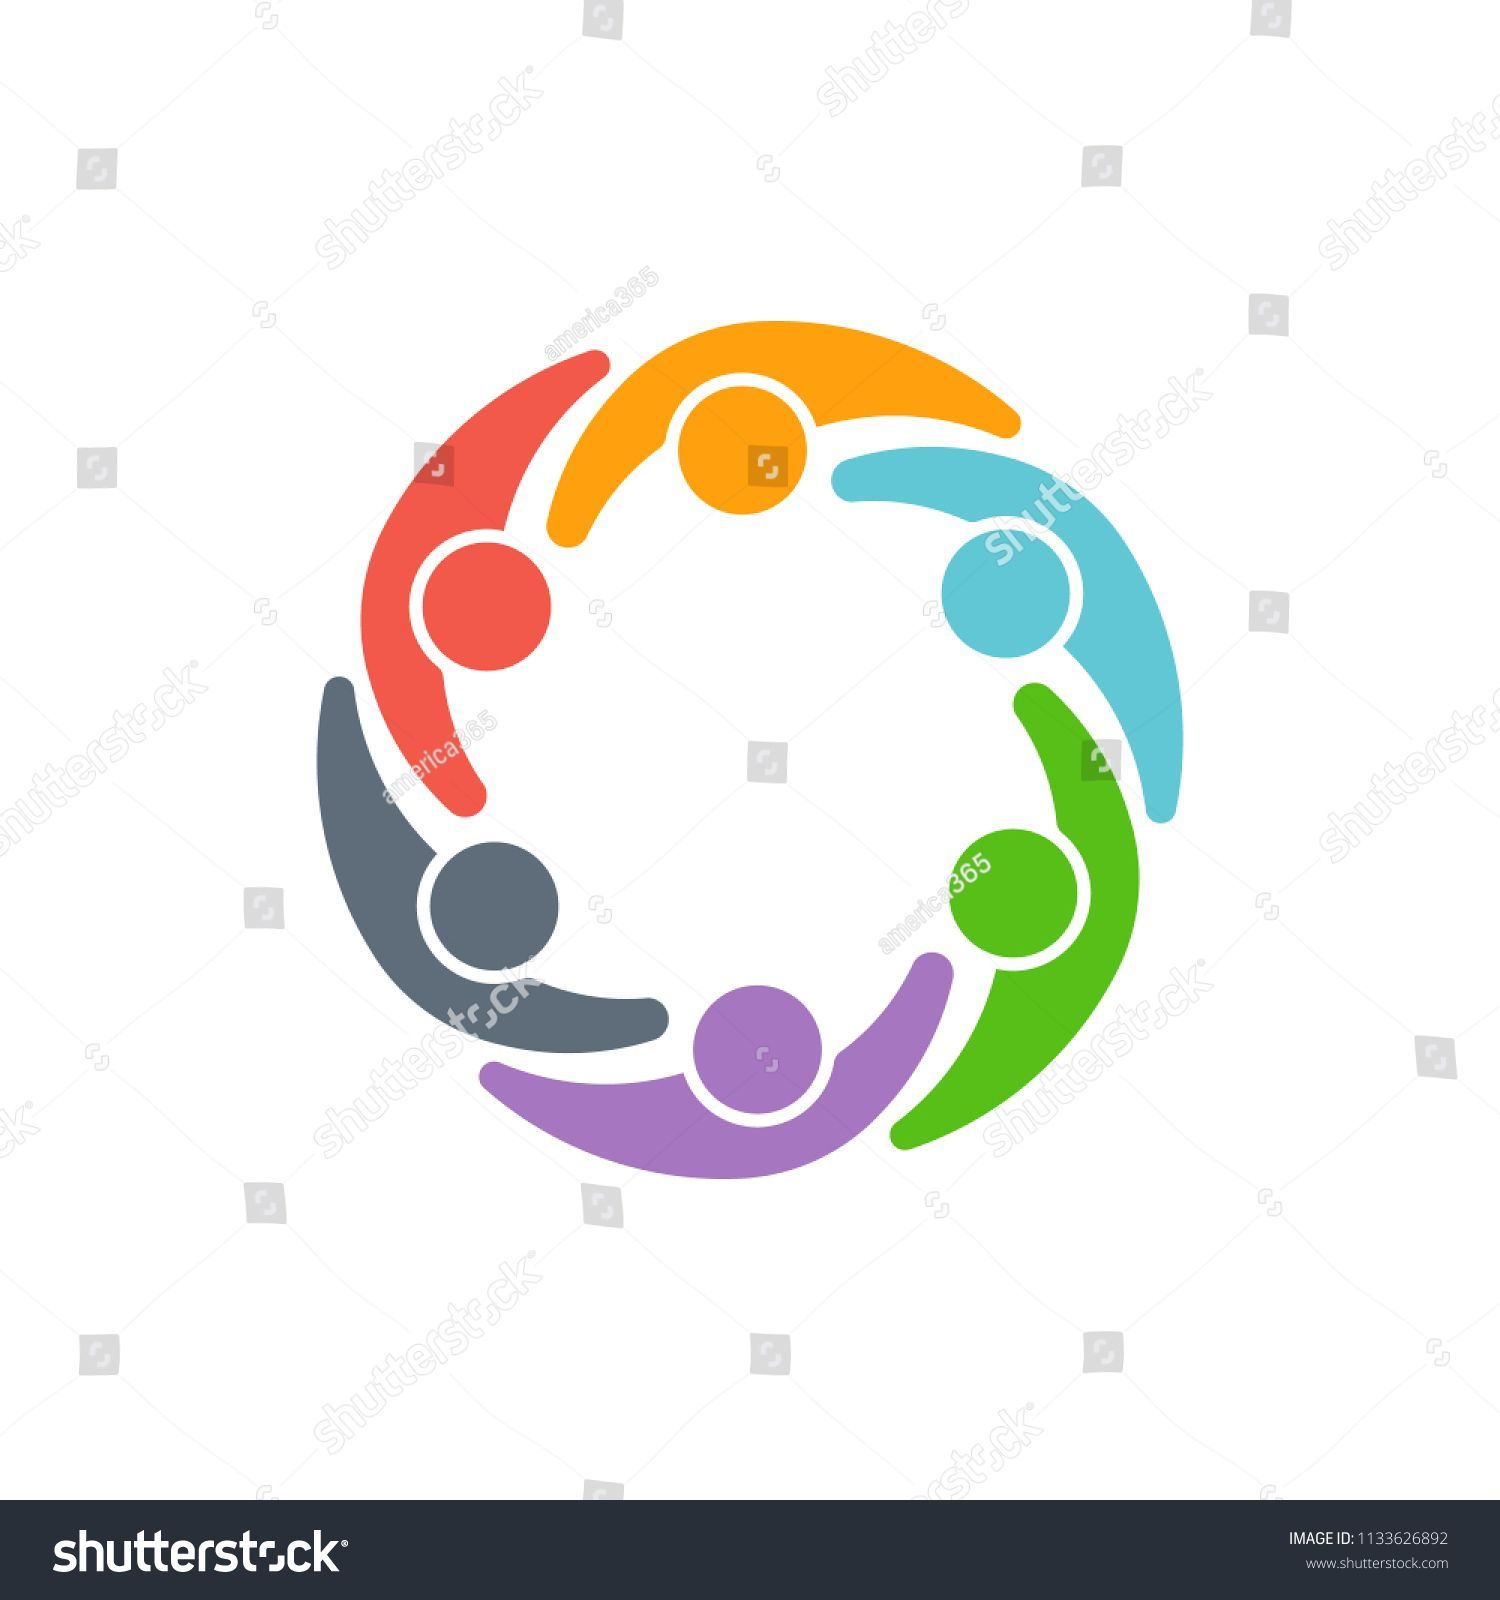 People logo vector design. Teamwork clipart person connected